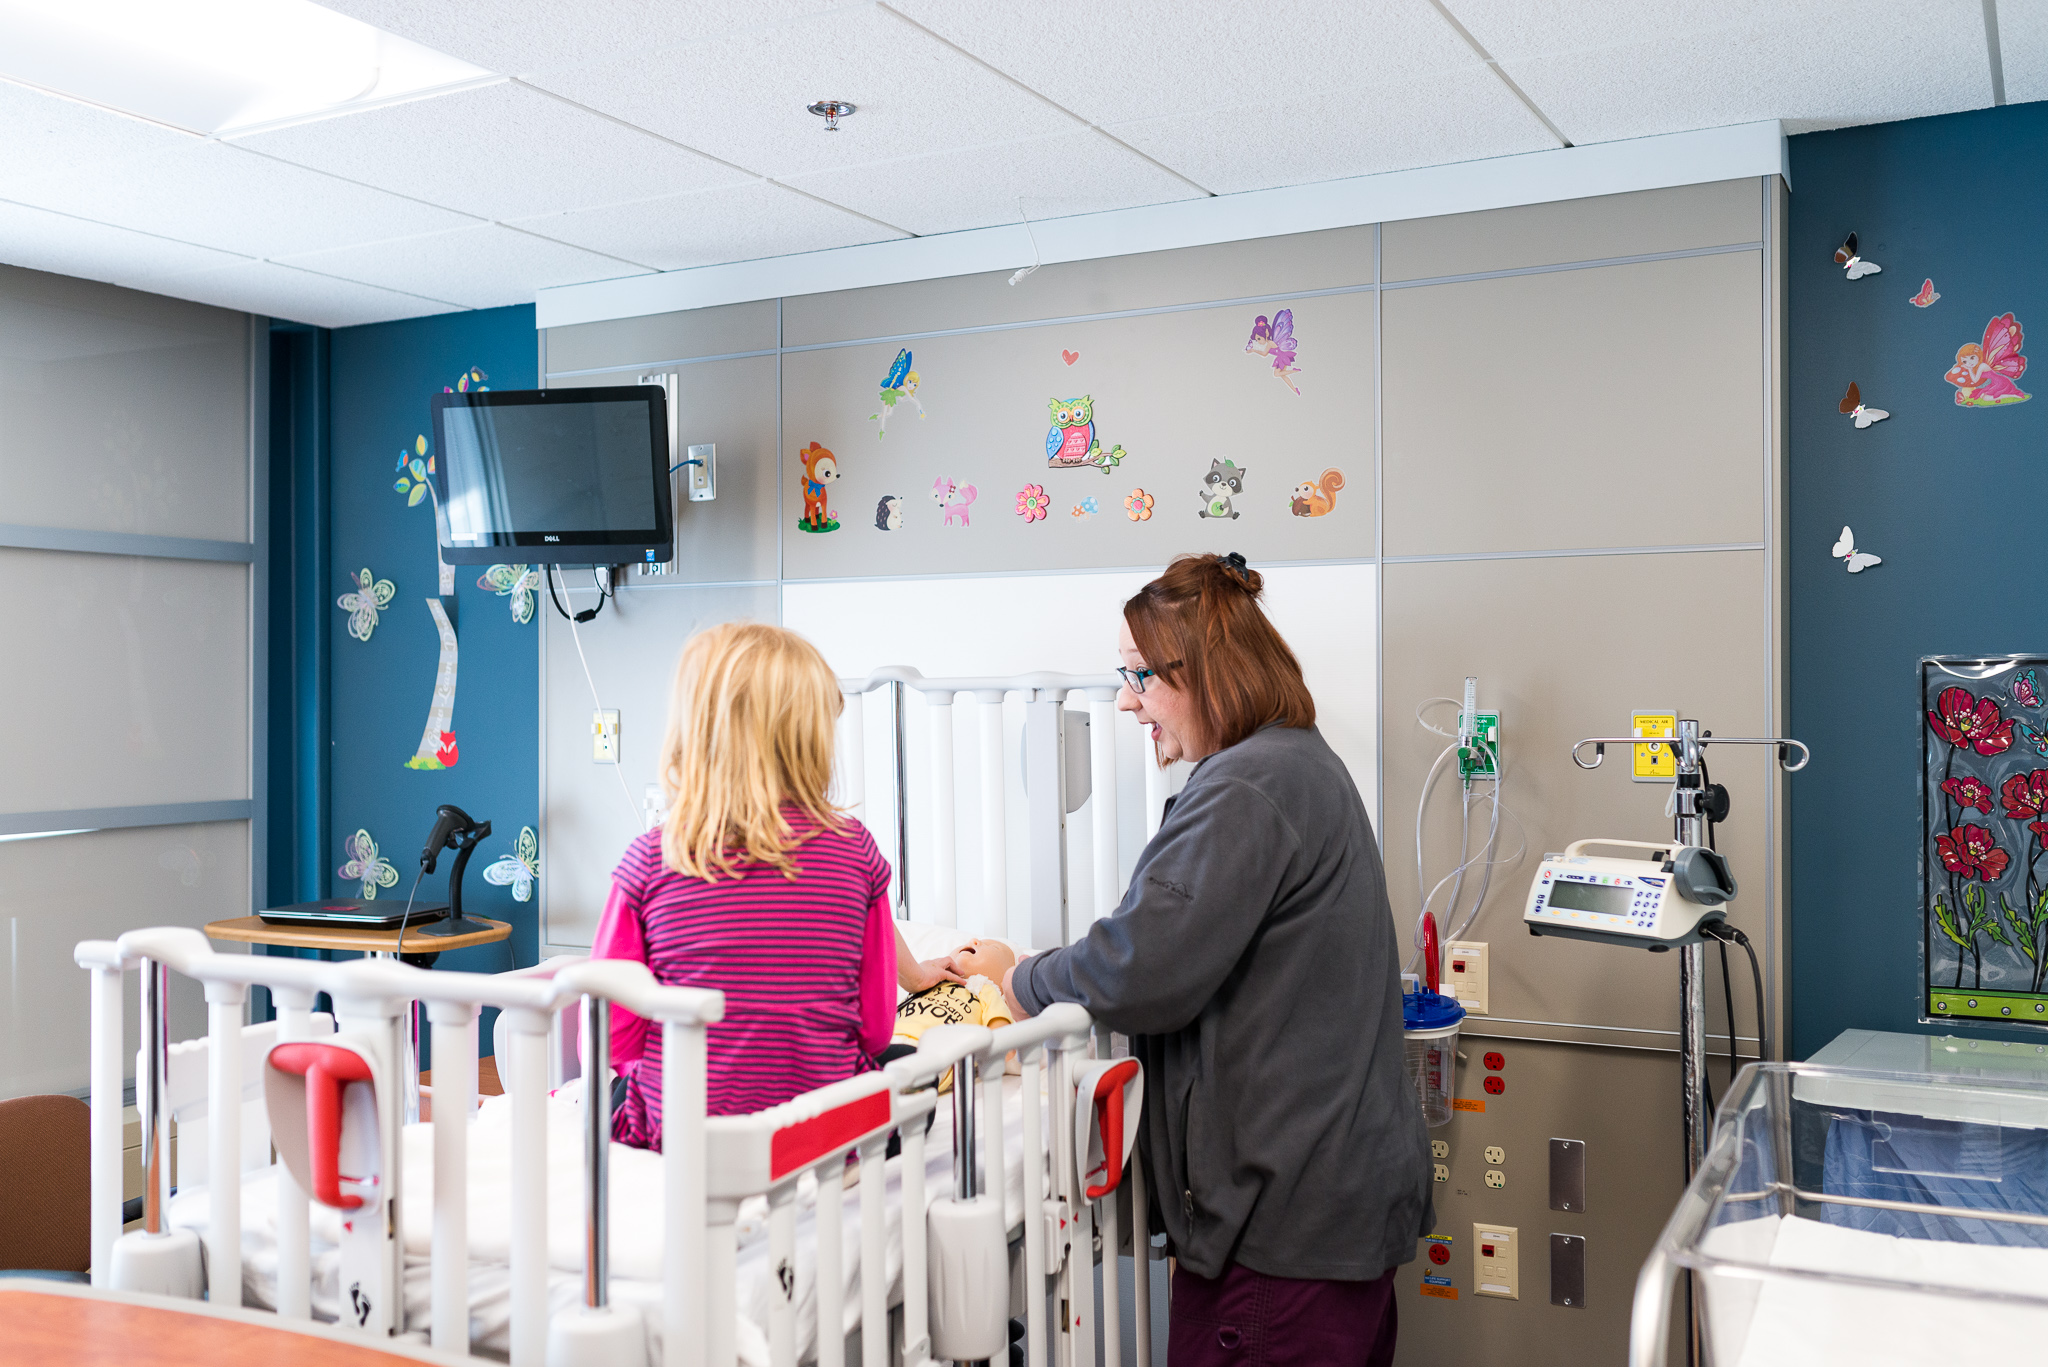 Child life specialist Jennifer talks to patient and develops a relationship